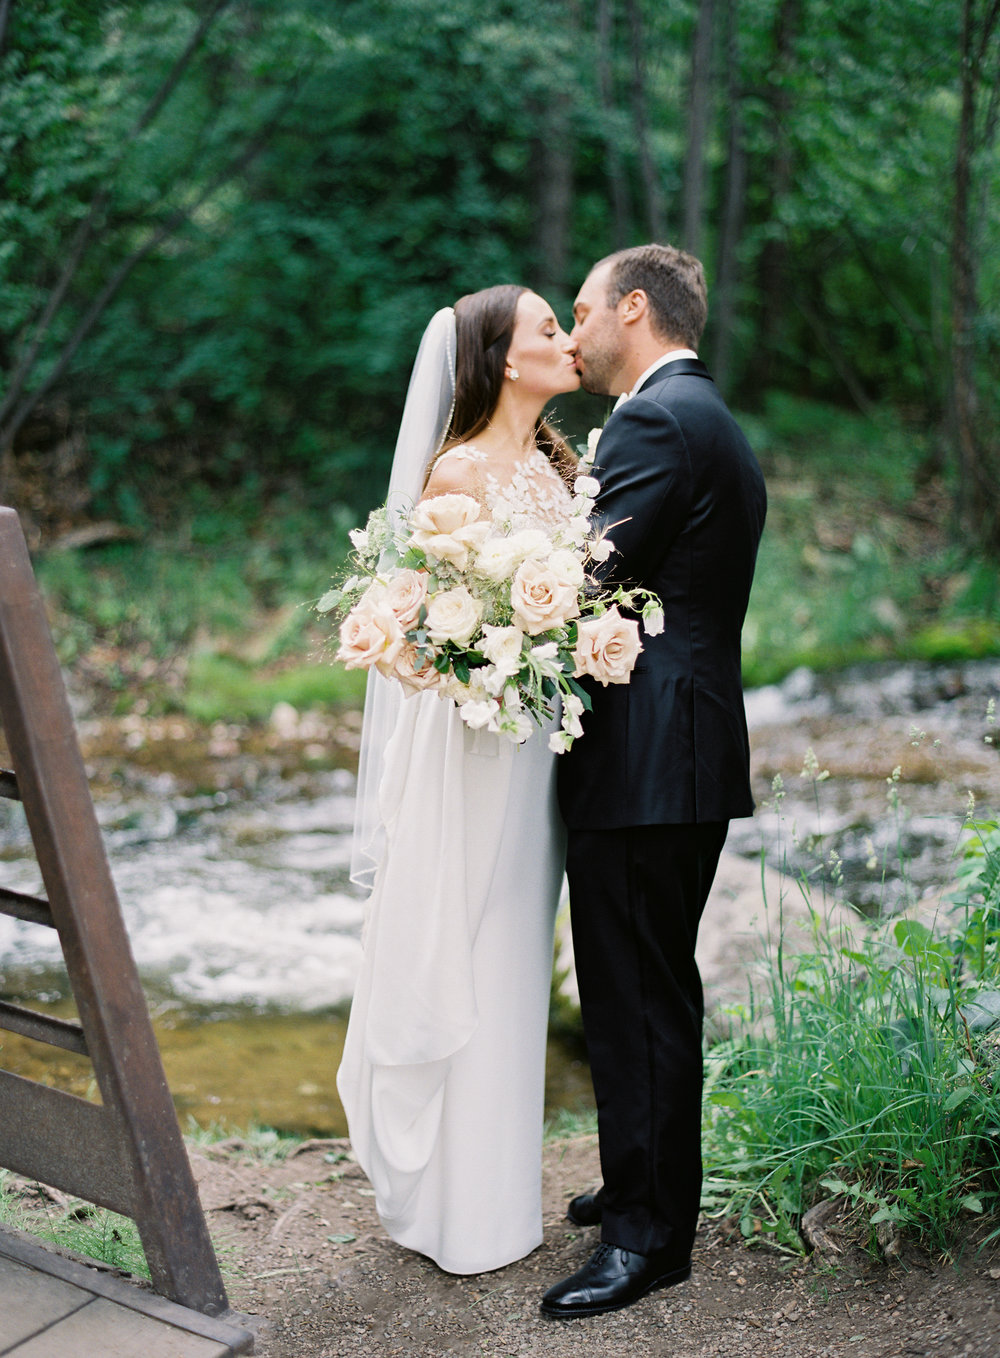 Olivia +William - Vail, Colorado